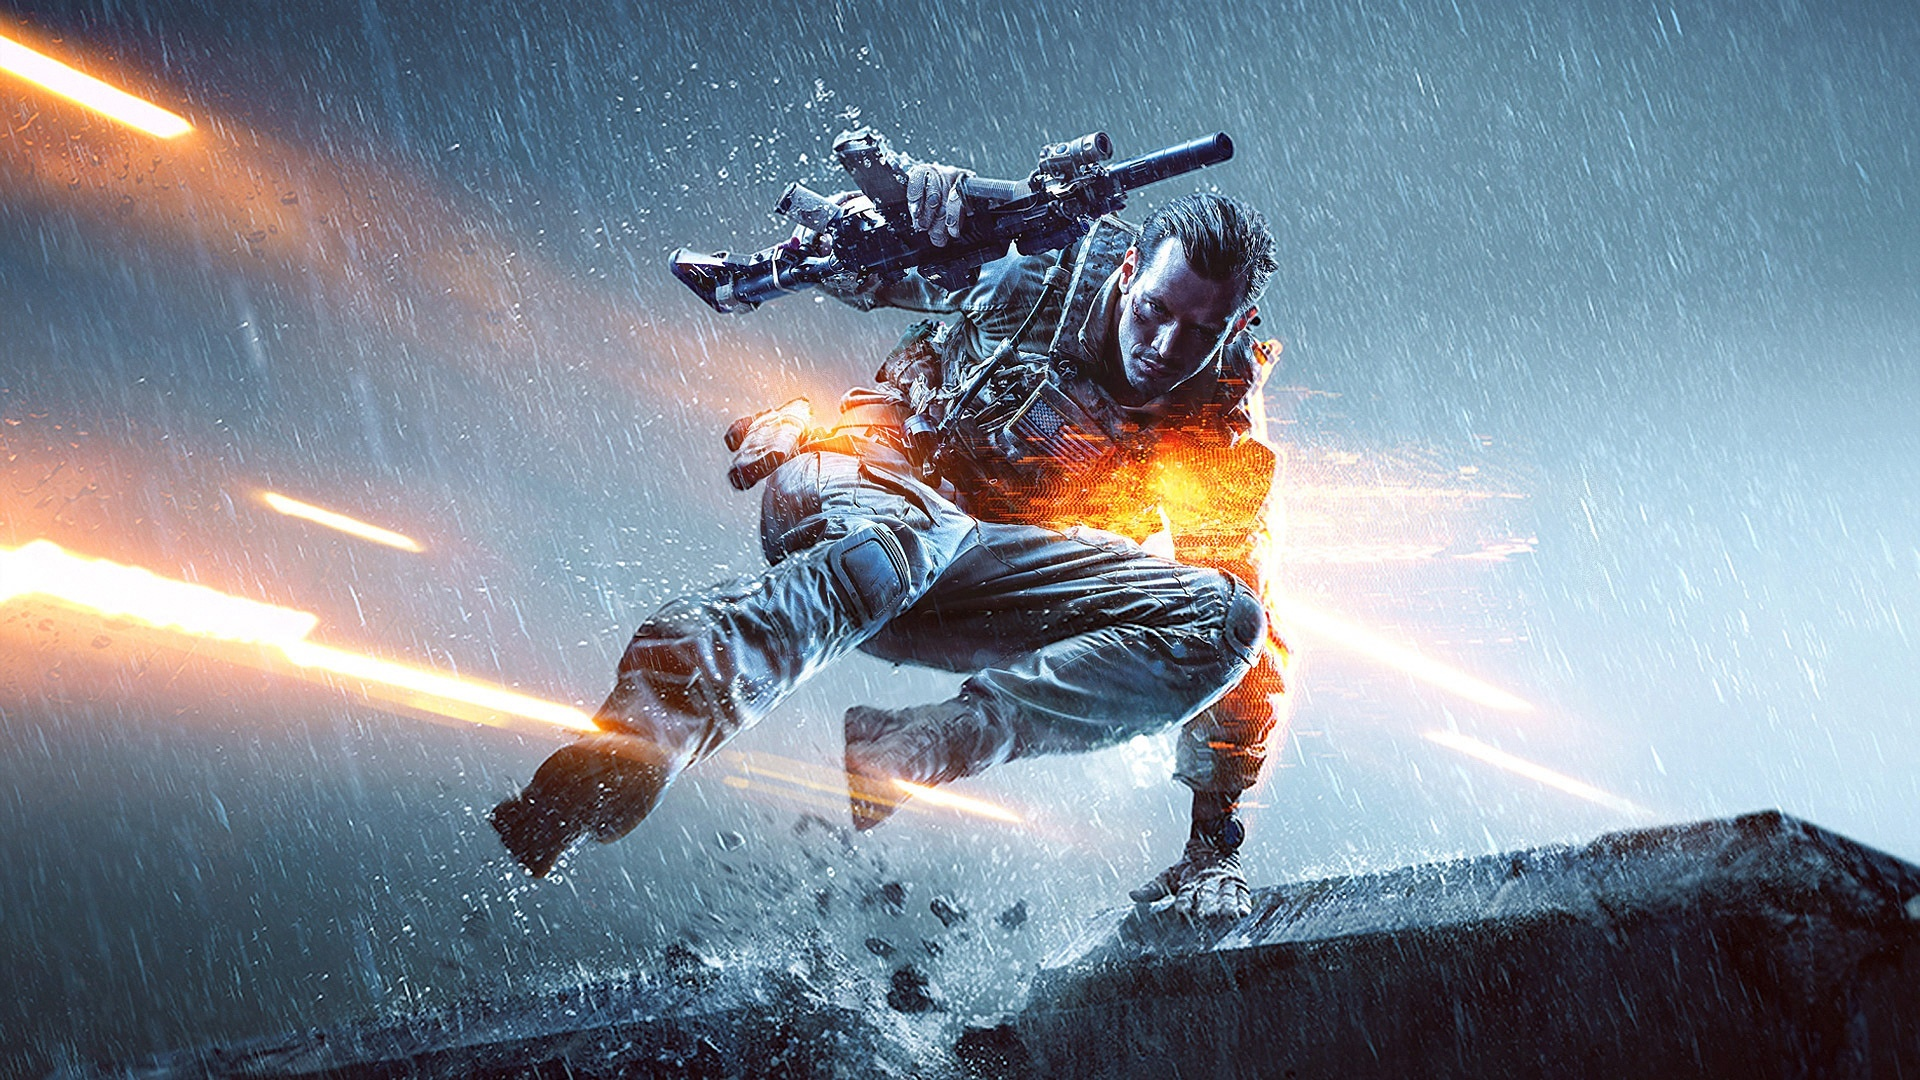 Battlefield 4 2013 Wallpapers HD Wallpapers